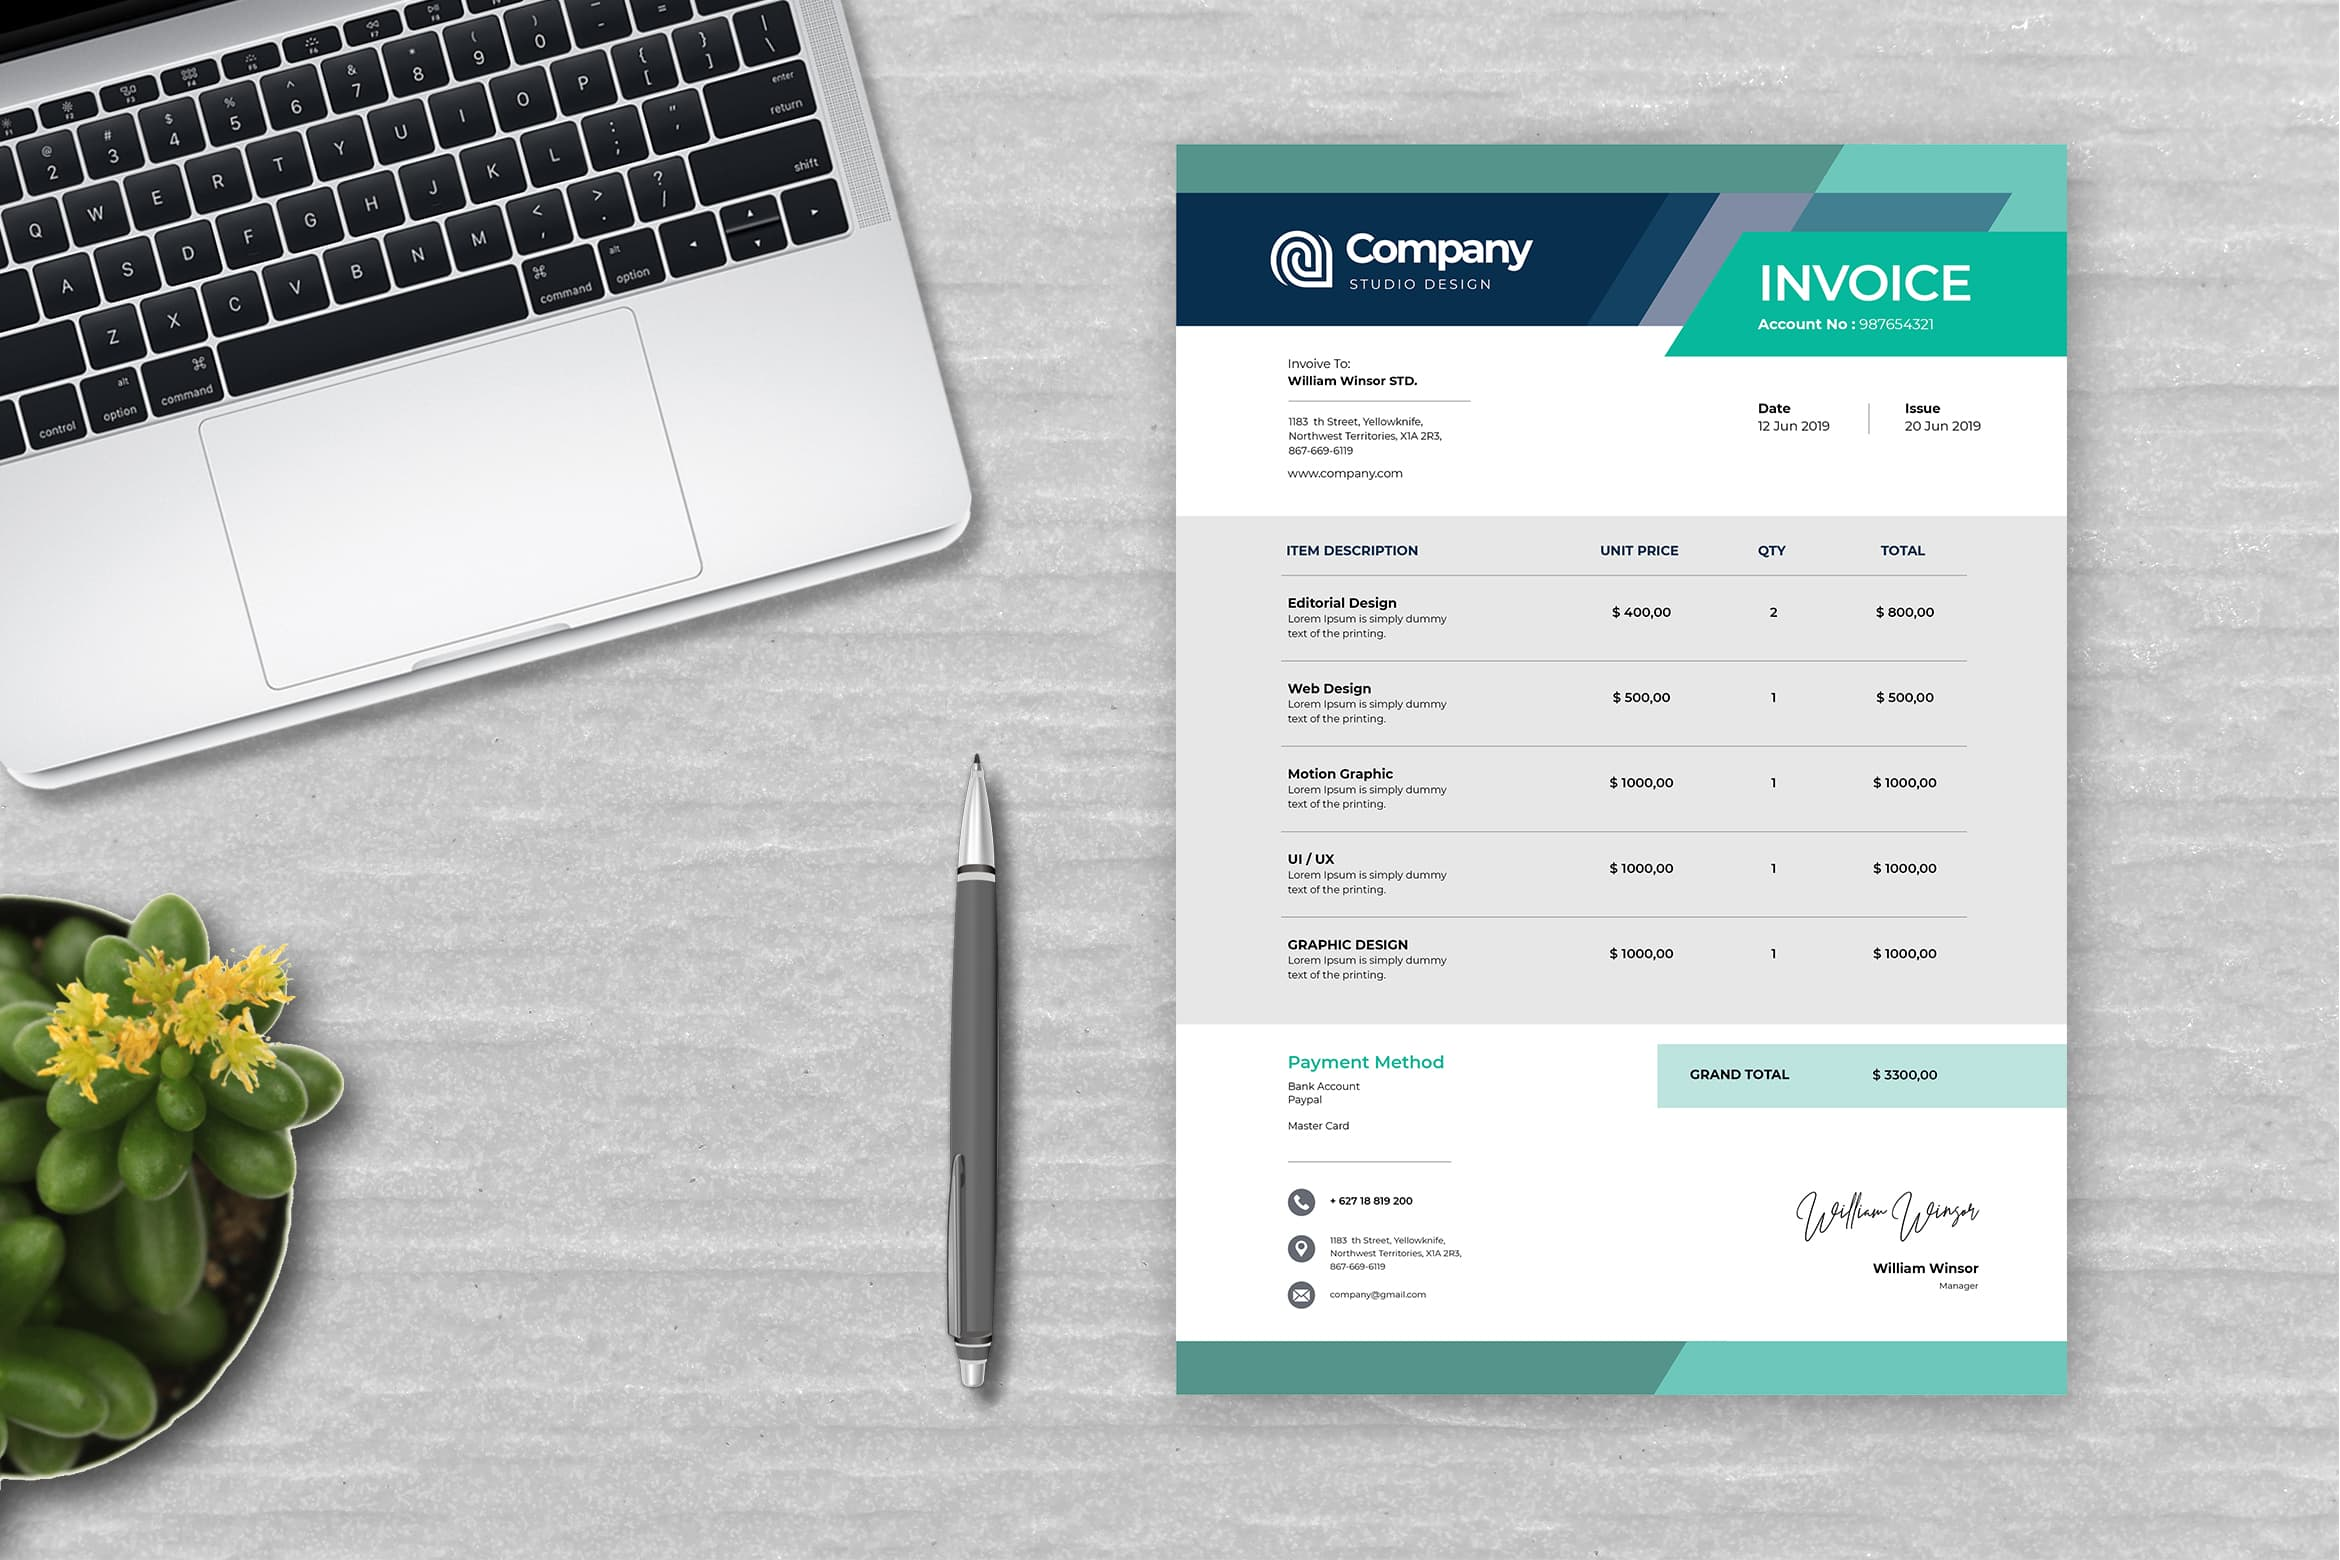 Invoice - Motion Graphics